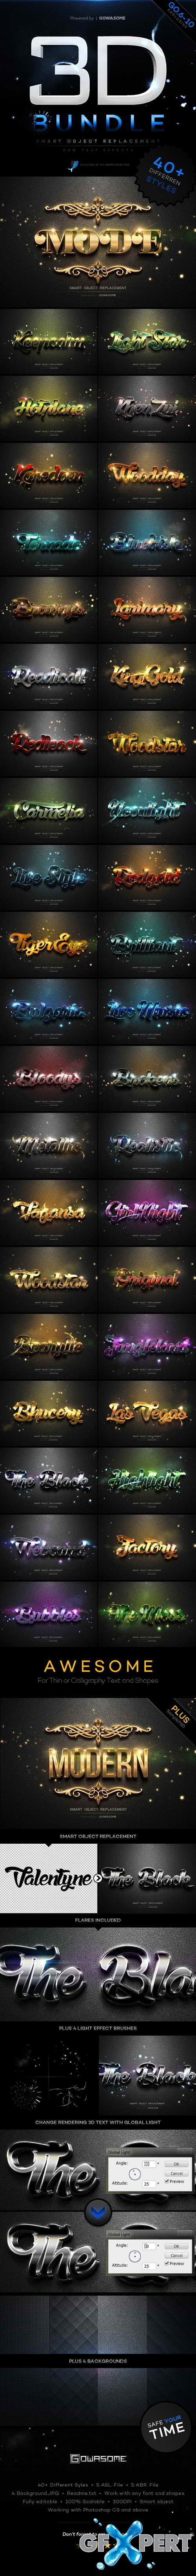 Graphicriver - Modern 3D Text Effects Bundle 11439996